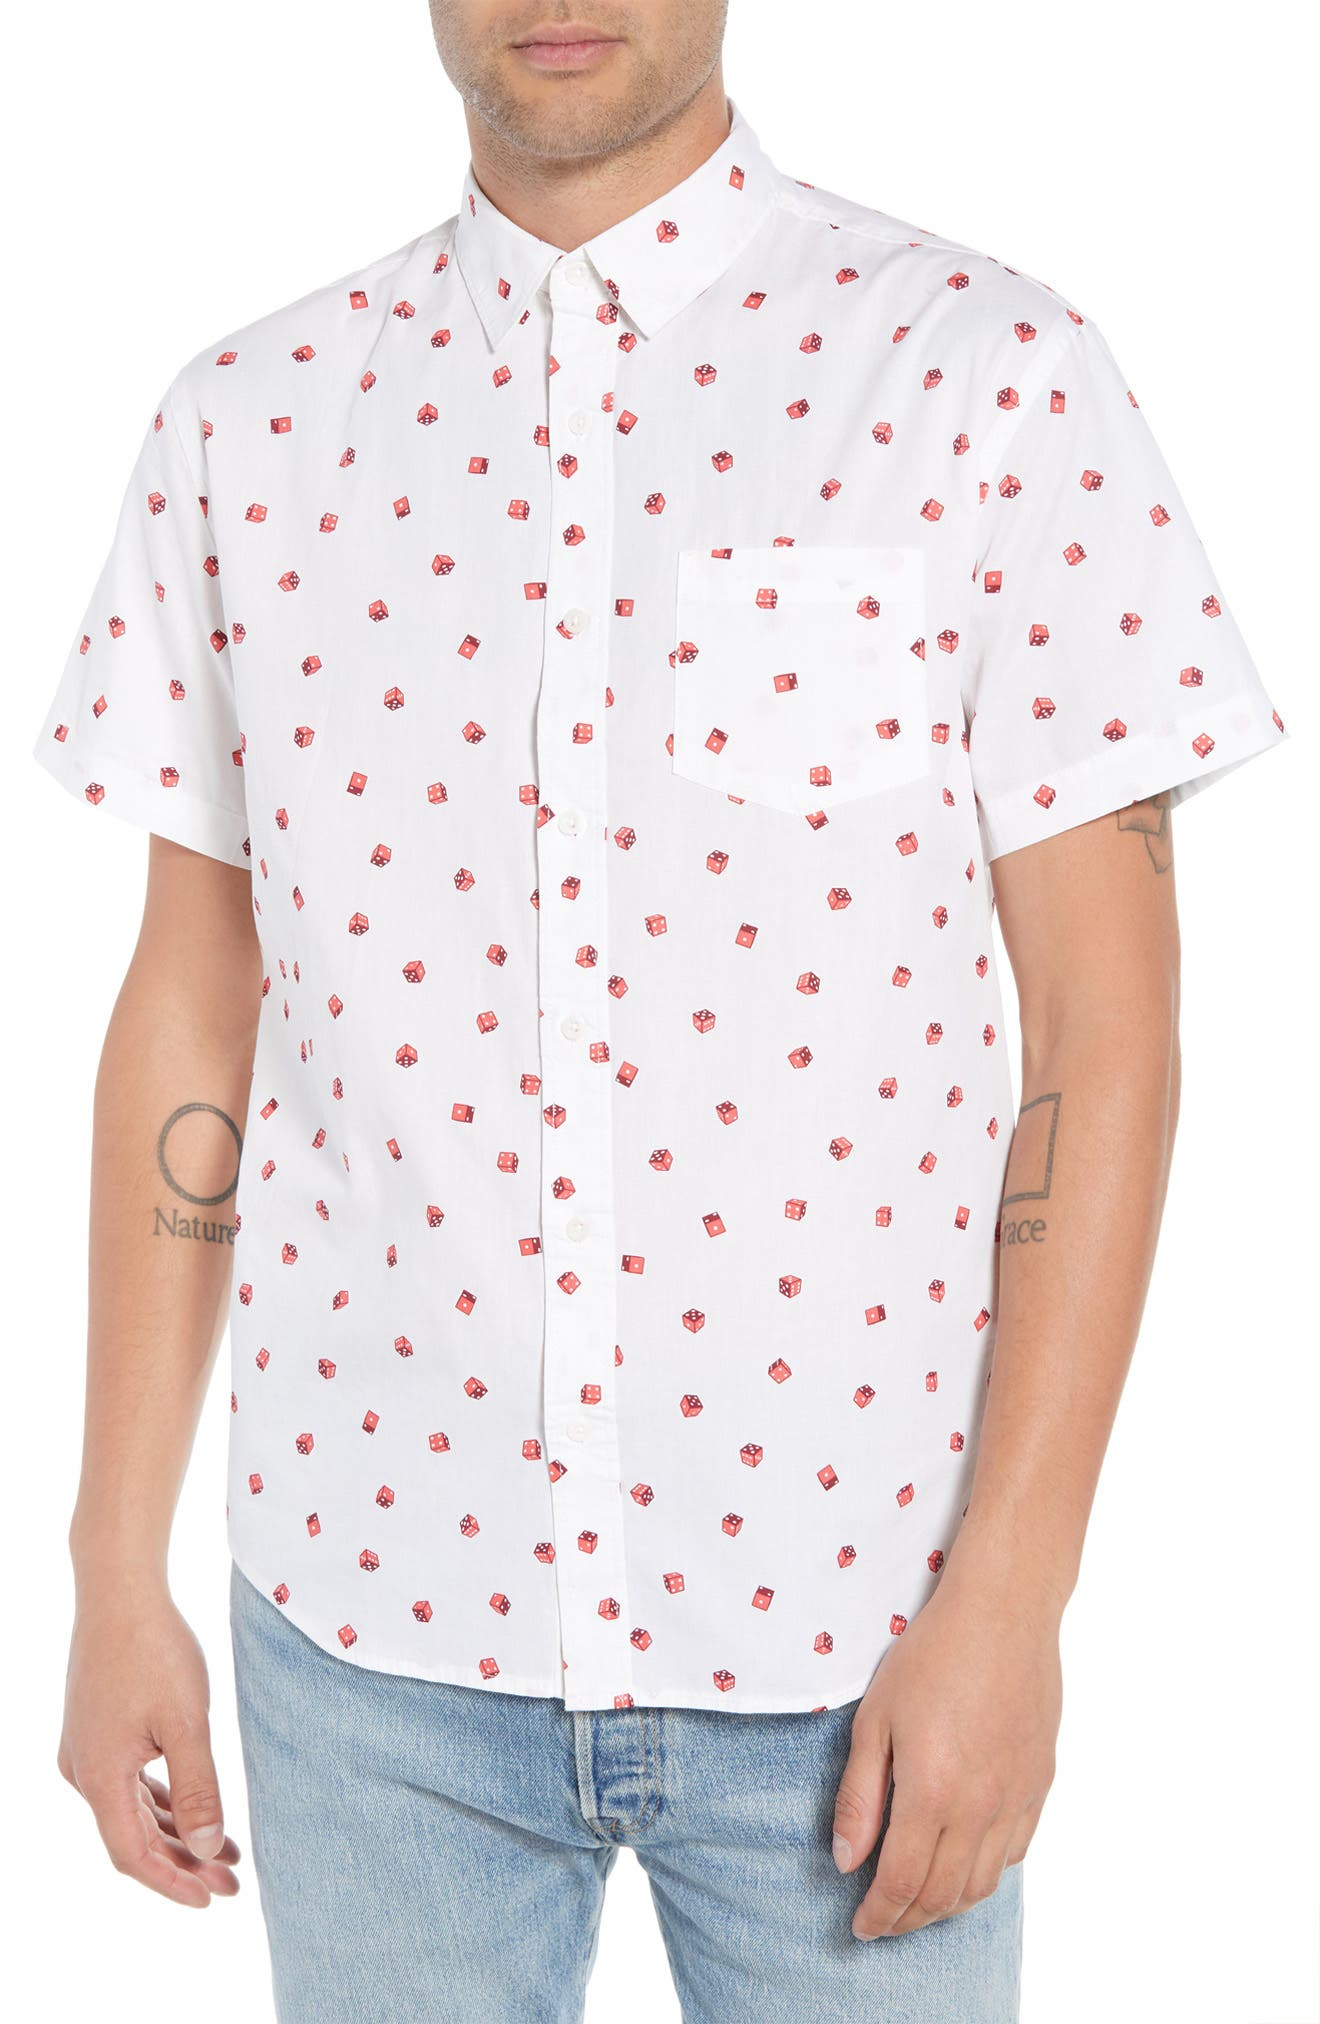 Print Camp Shirt,                         Main,                         color, White / Red Rumba No Dice